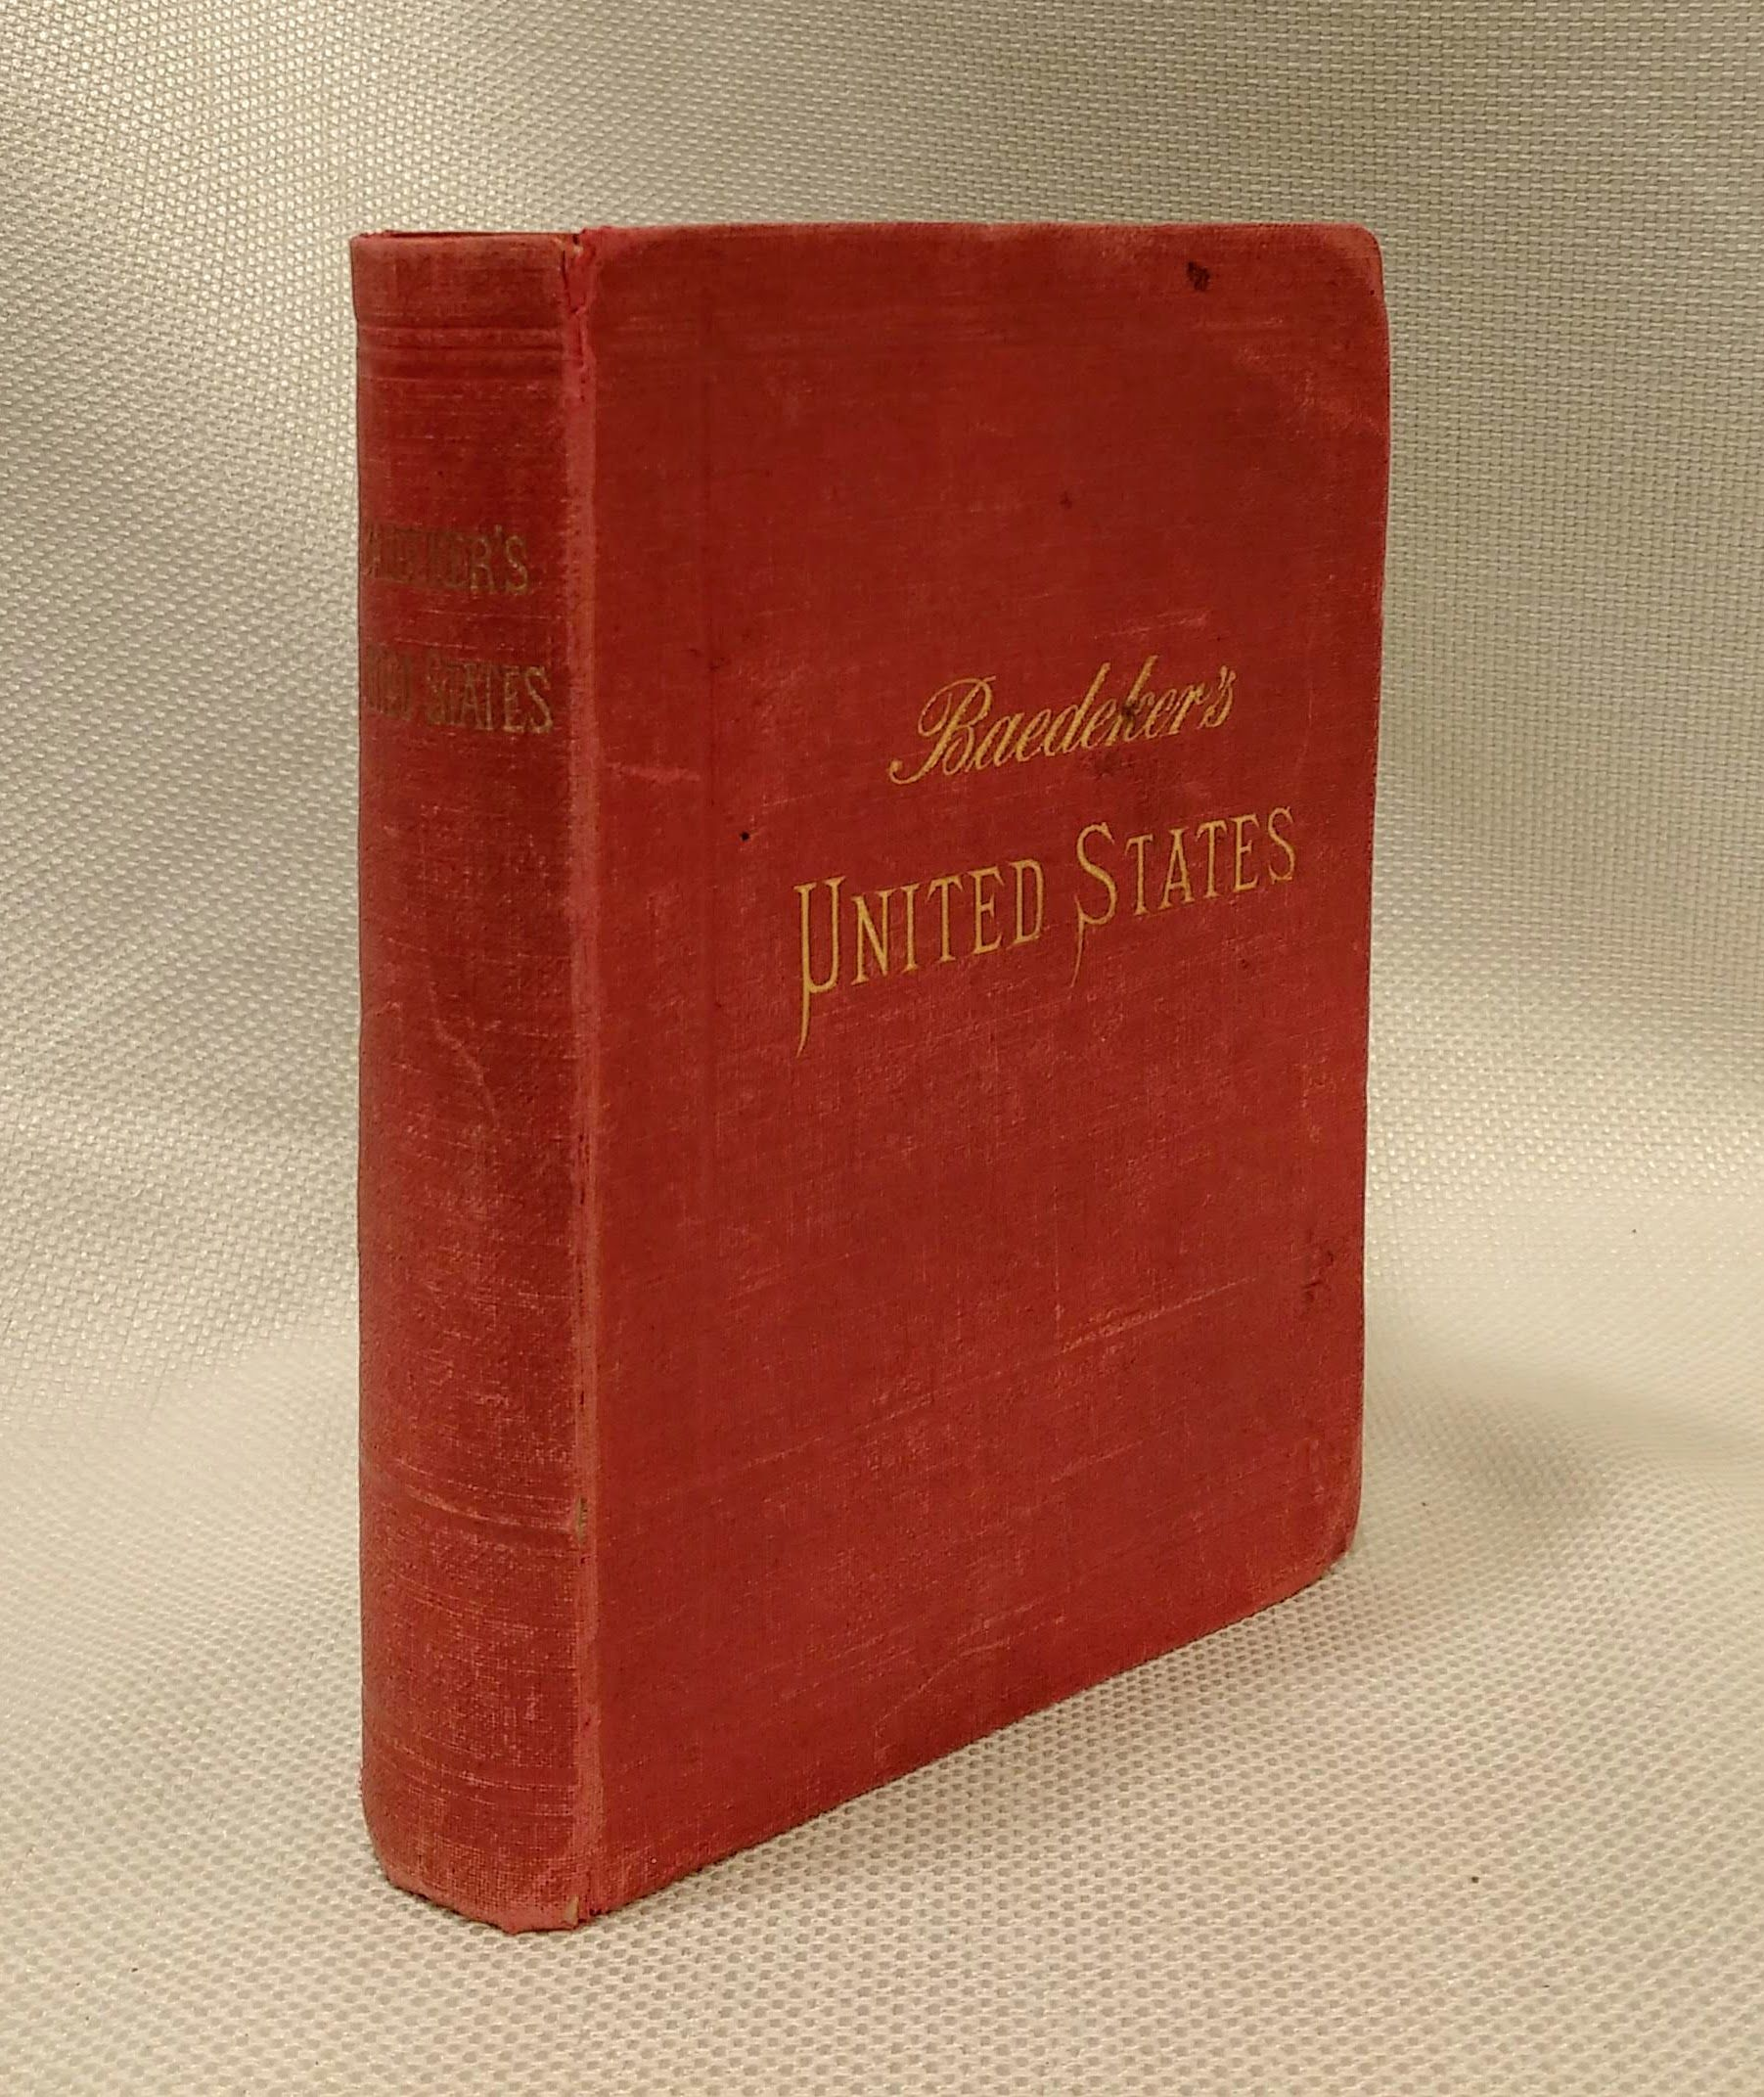 Baedeker's The United States With an Excursion into Mexico Handbook For Travellers. Third [ 3rd ] Revised Edition, Karl Baedeker, editor; J. F. Muirhead, author